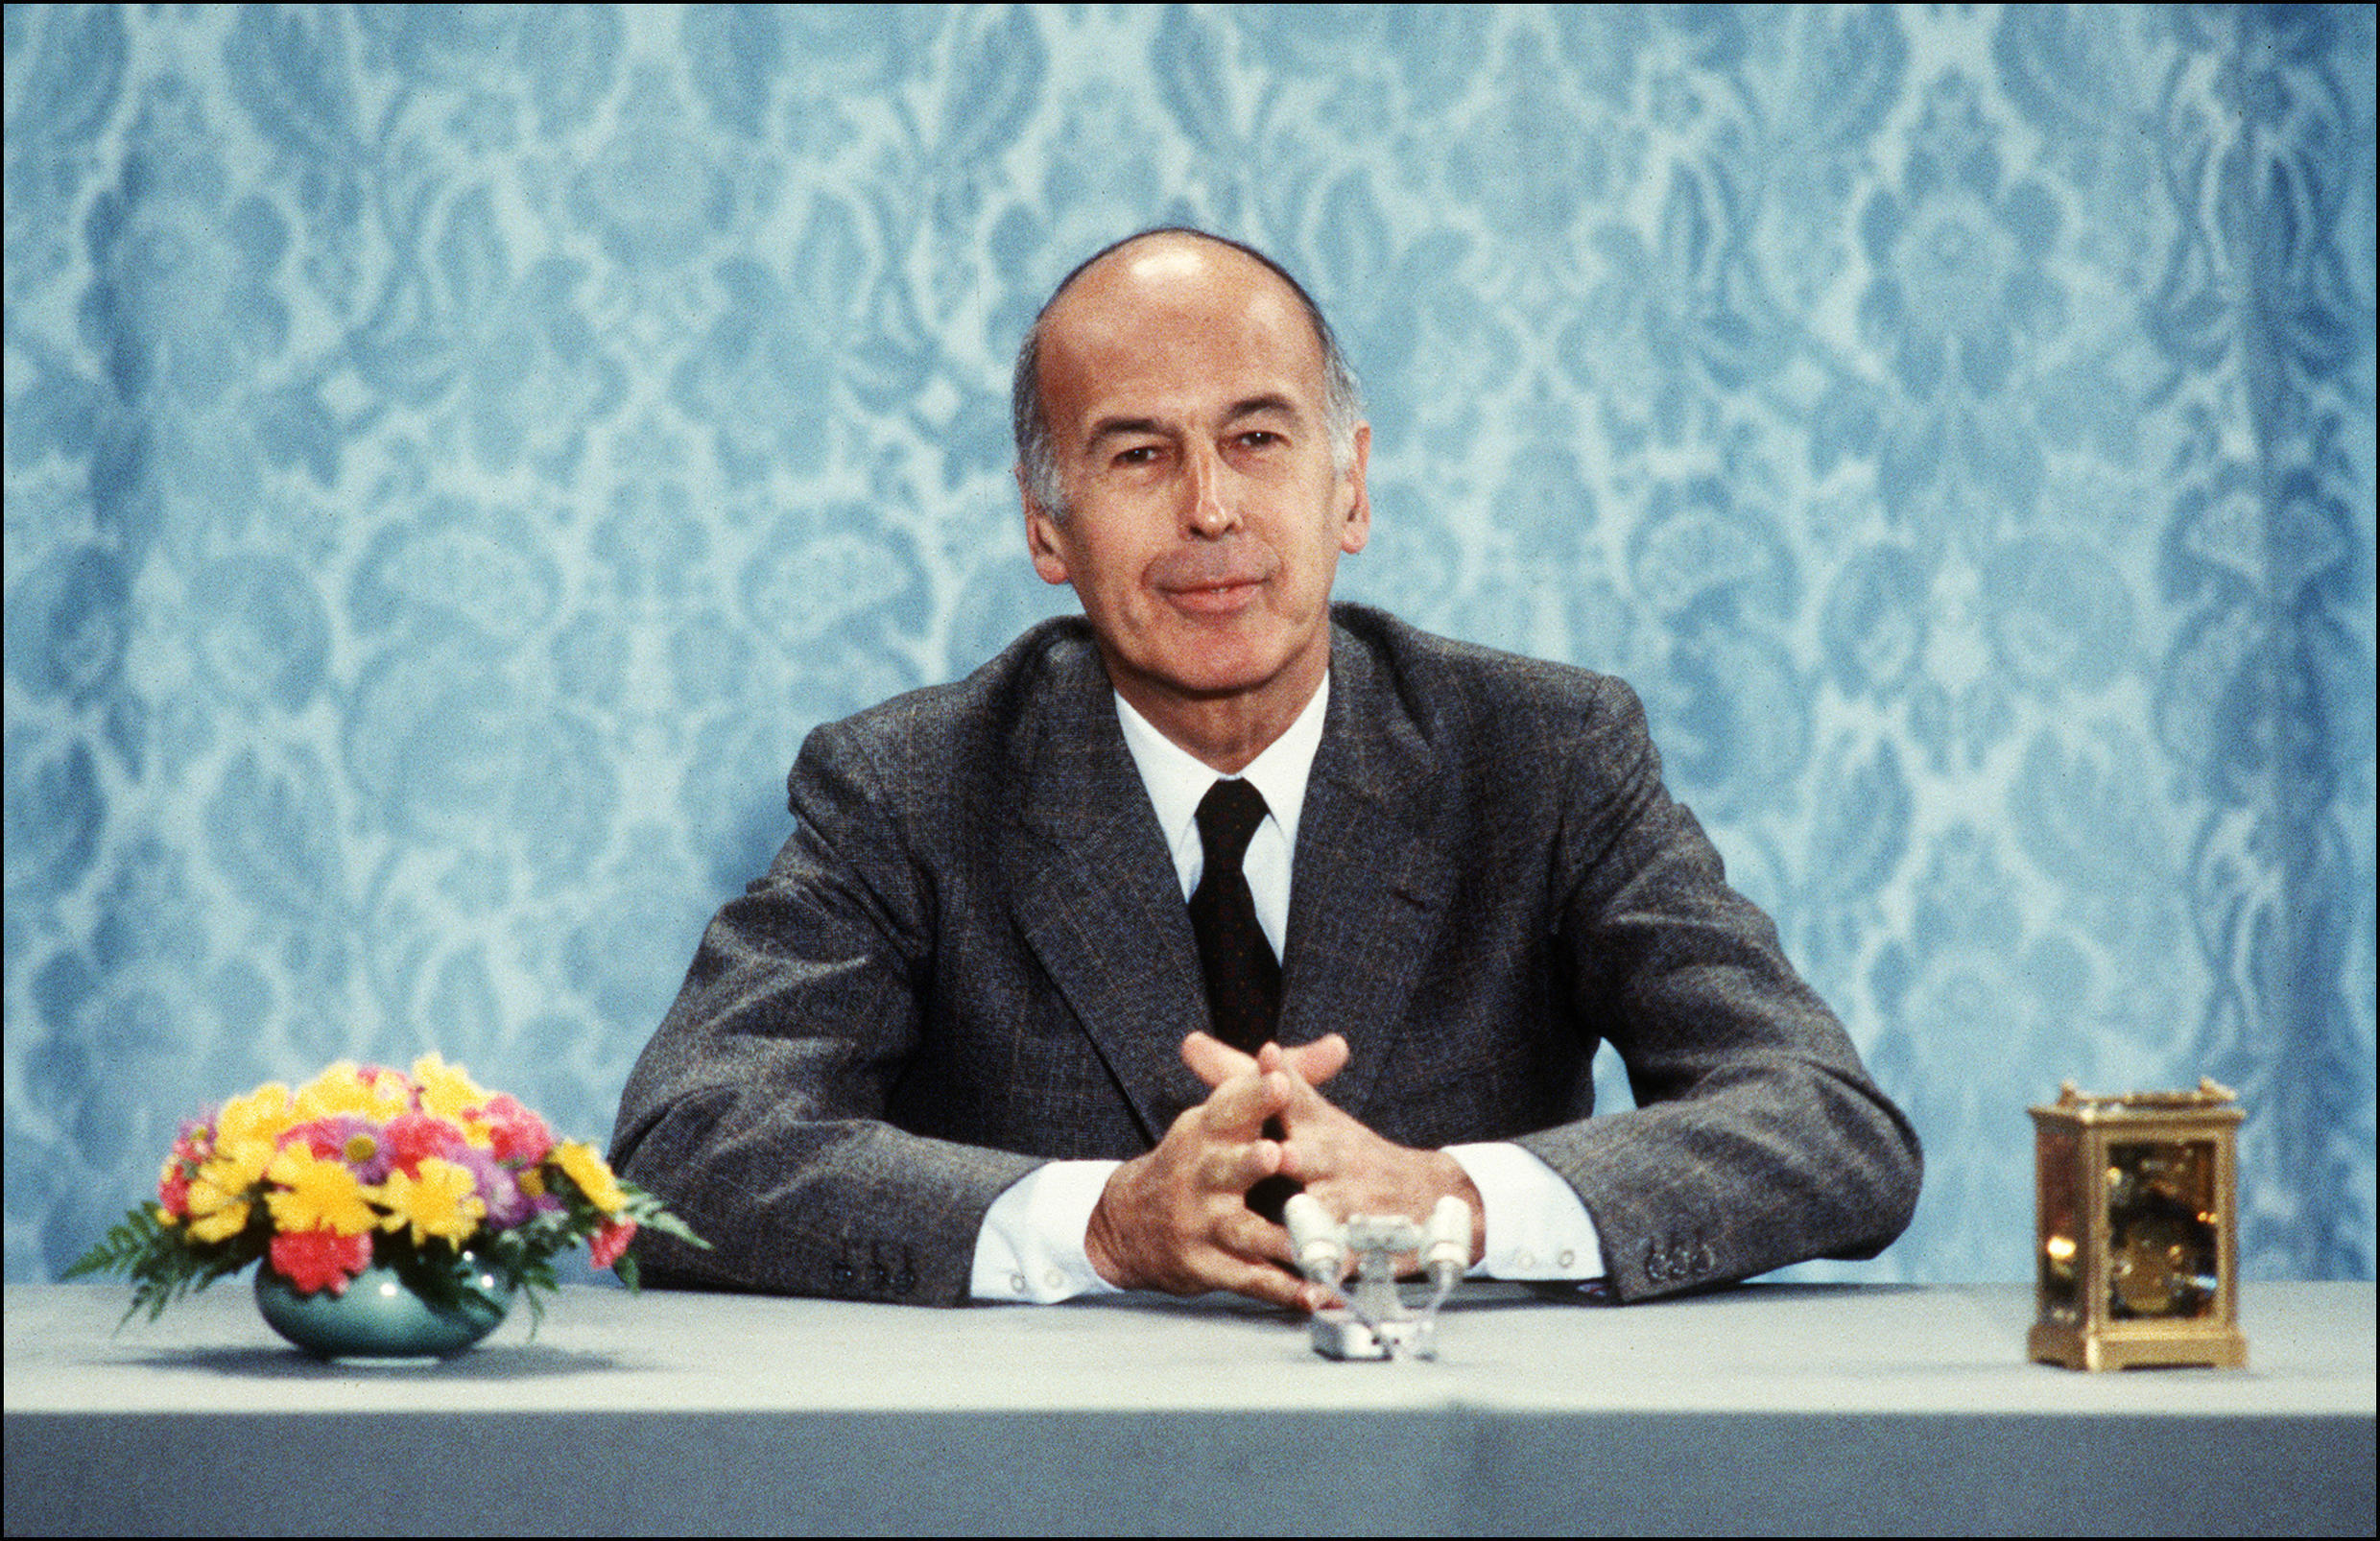 Valéry Giscard d'Estaing answers journalists' questions at a news conference on June 26, 1980, at the Élysée Palace in Paris, France.